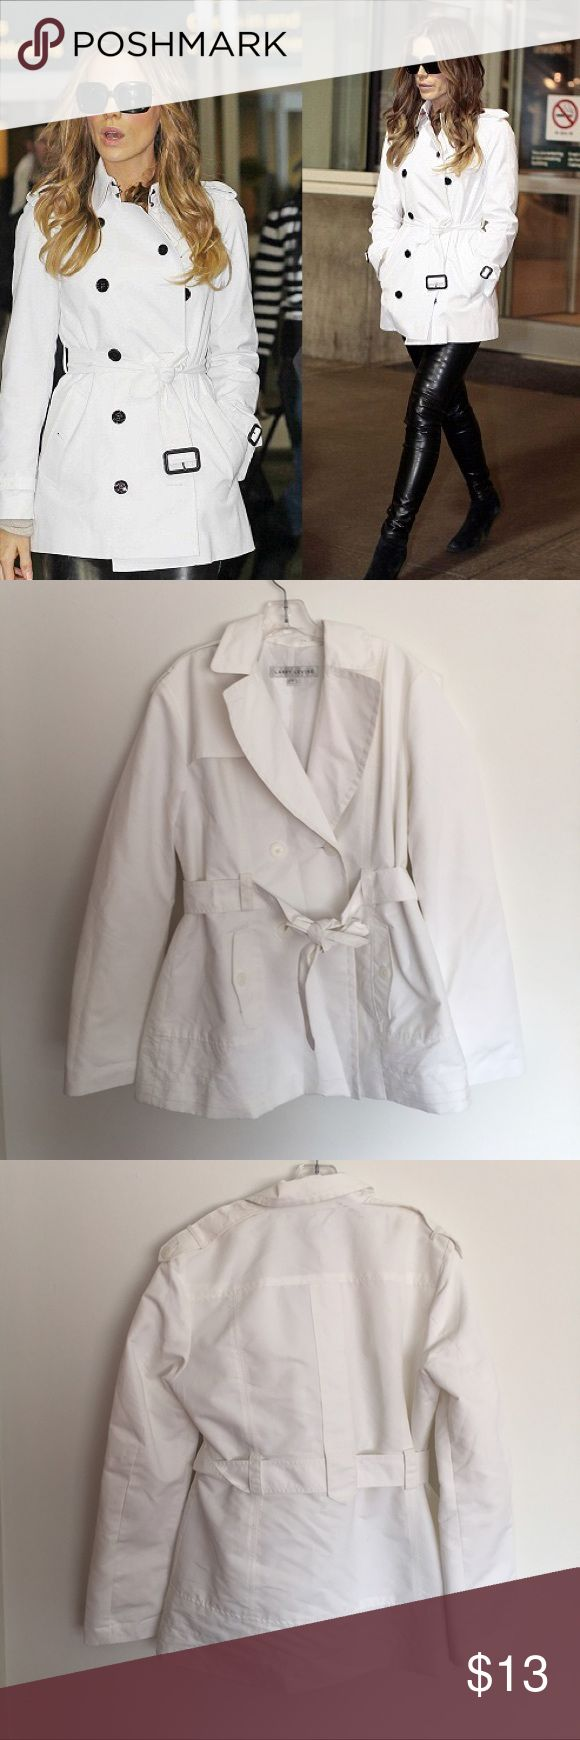 ⭐️ 30% OFF BUNDLES ⭐️ Preowned Larry Levine short white trench coat some marks likely removed with wash. Larry Levine Jackets & Coats Trench Coats